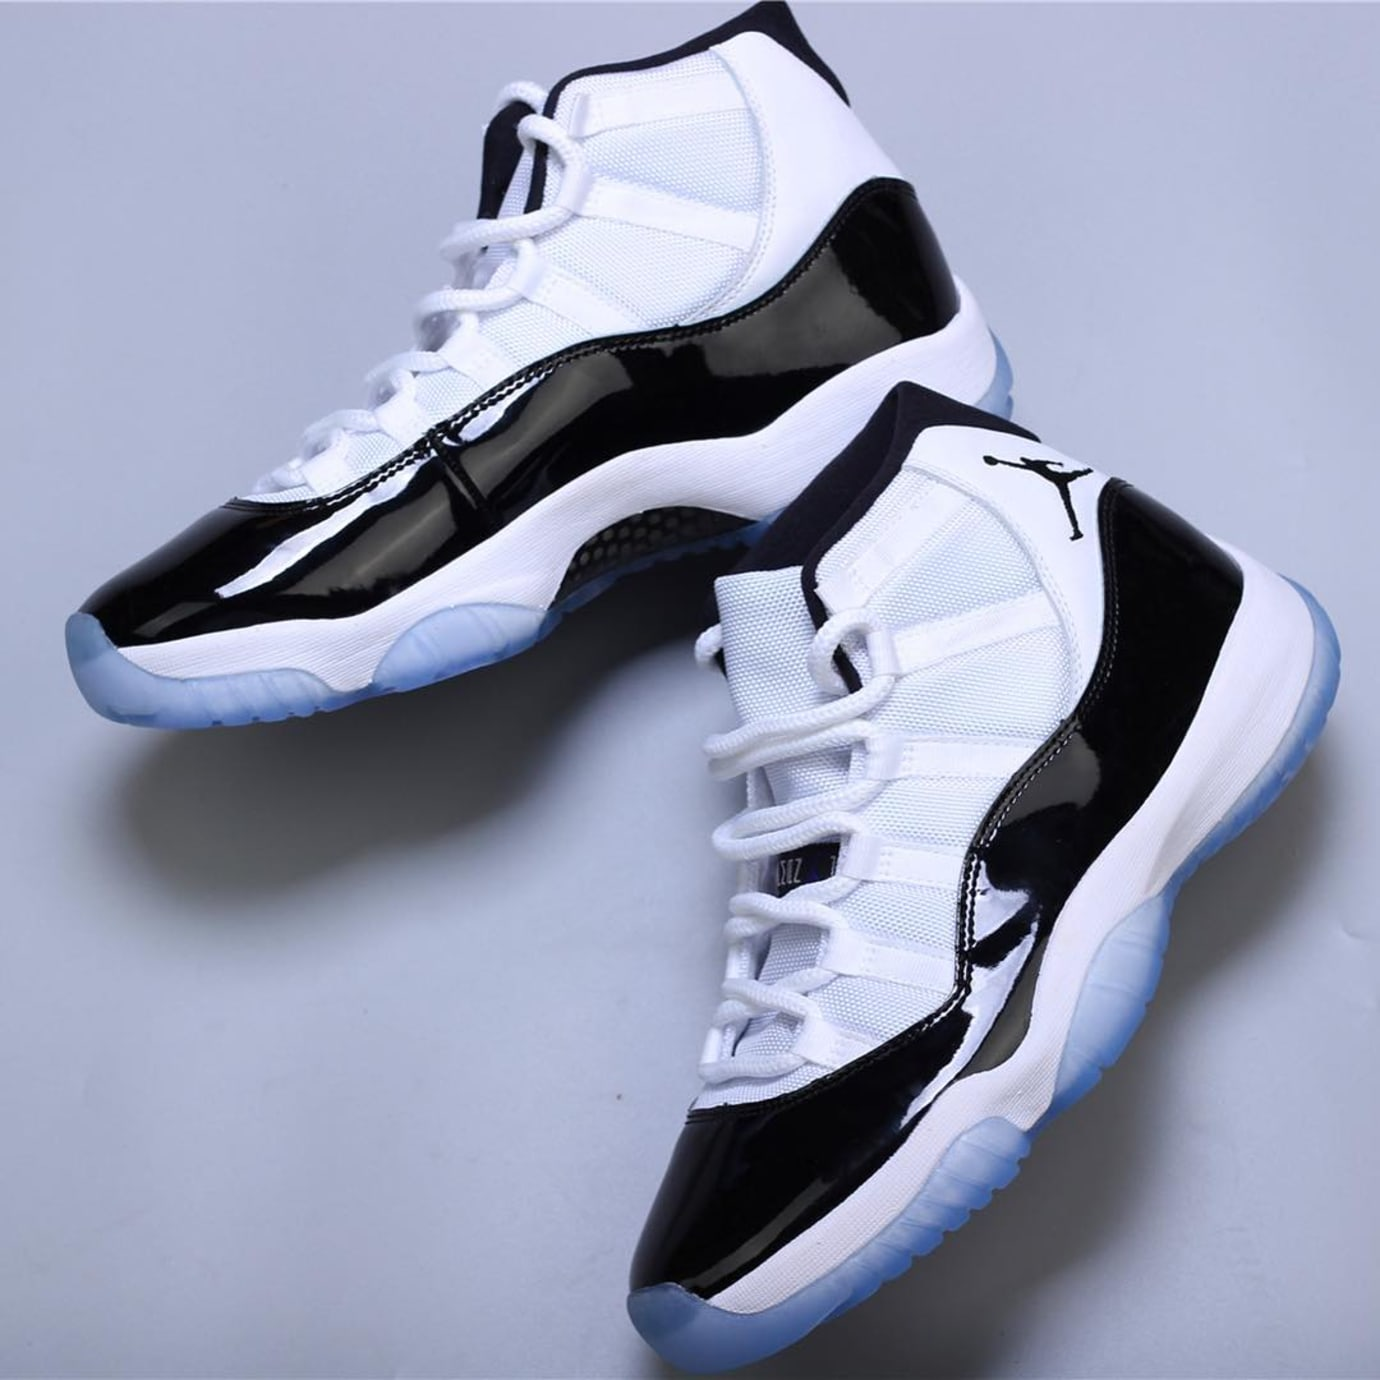 outlet store 05e83 97bc1 Image via hanzuying · Air Jordan 11 XI Concord 2018 Release Date 378037-100  Side